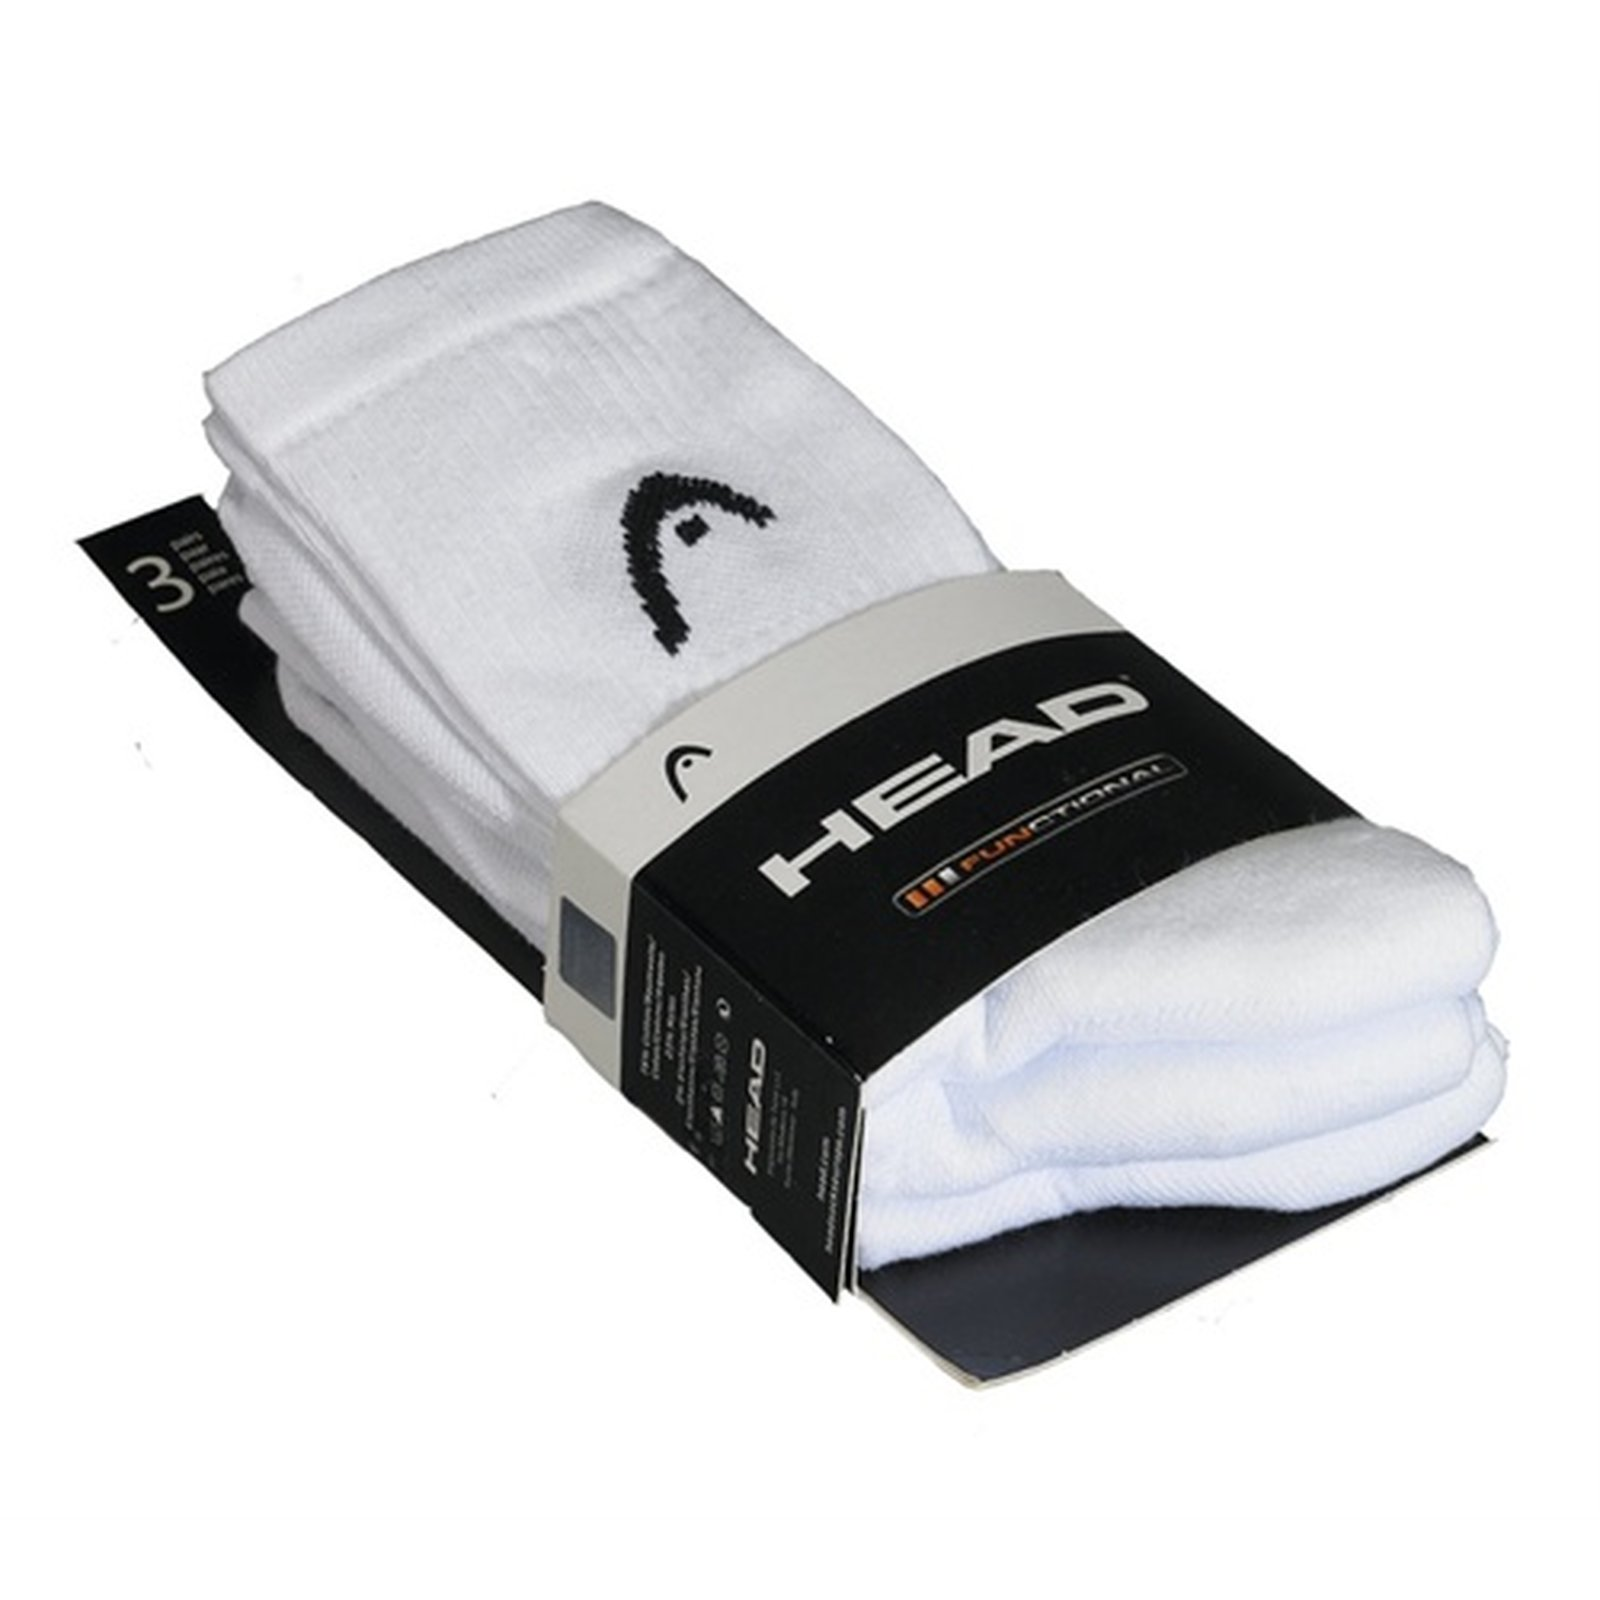 Head - Funktions-Sportsocken mit Ring Bandage weiss 35-38